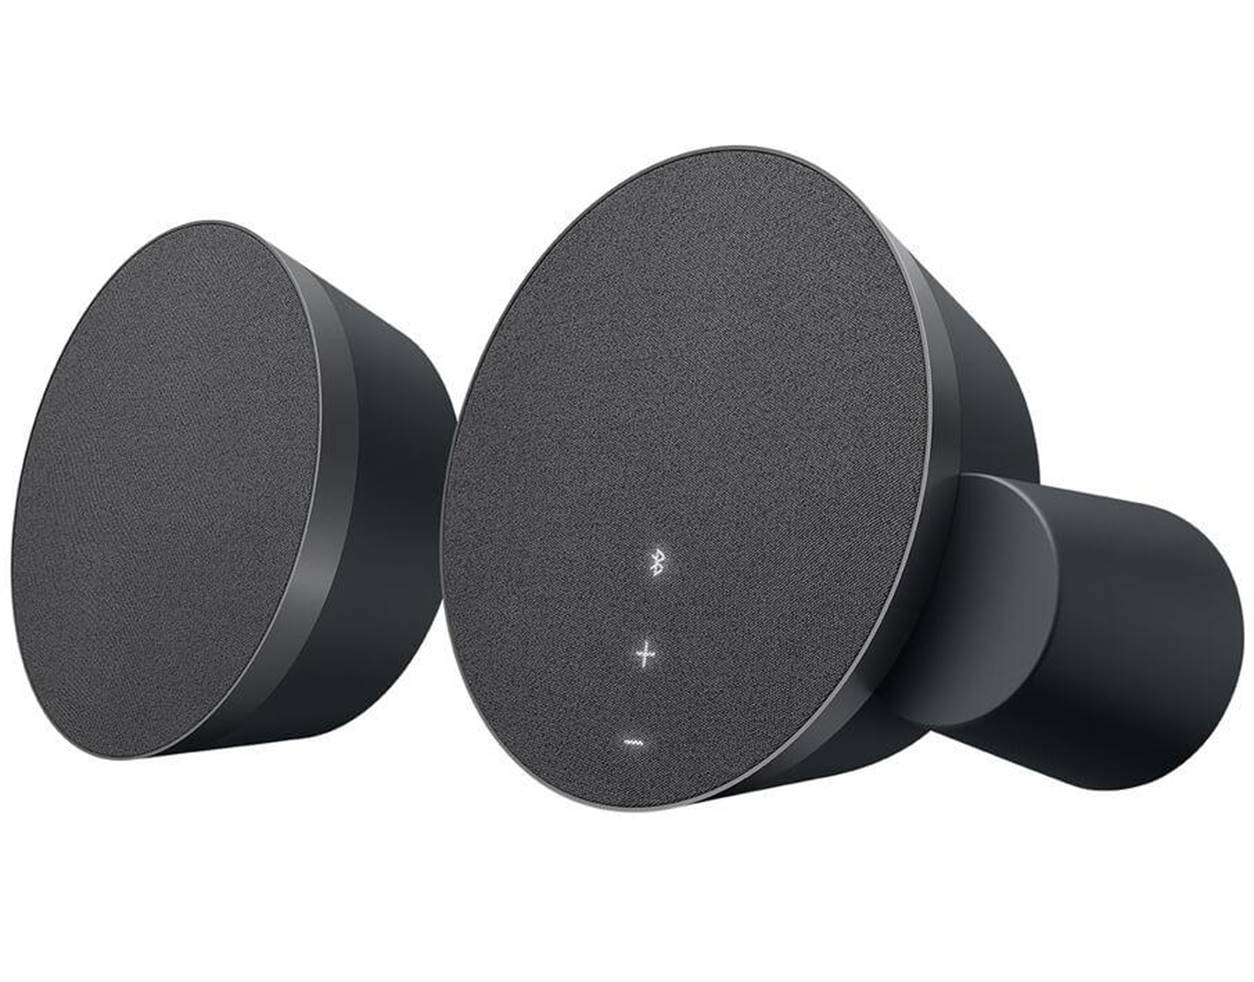 Logitech MX Speakers